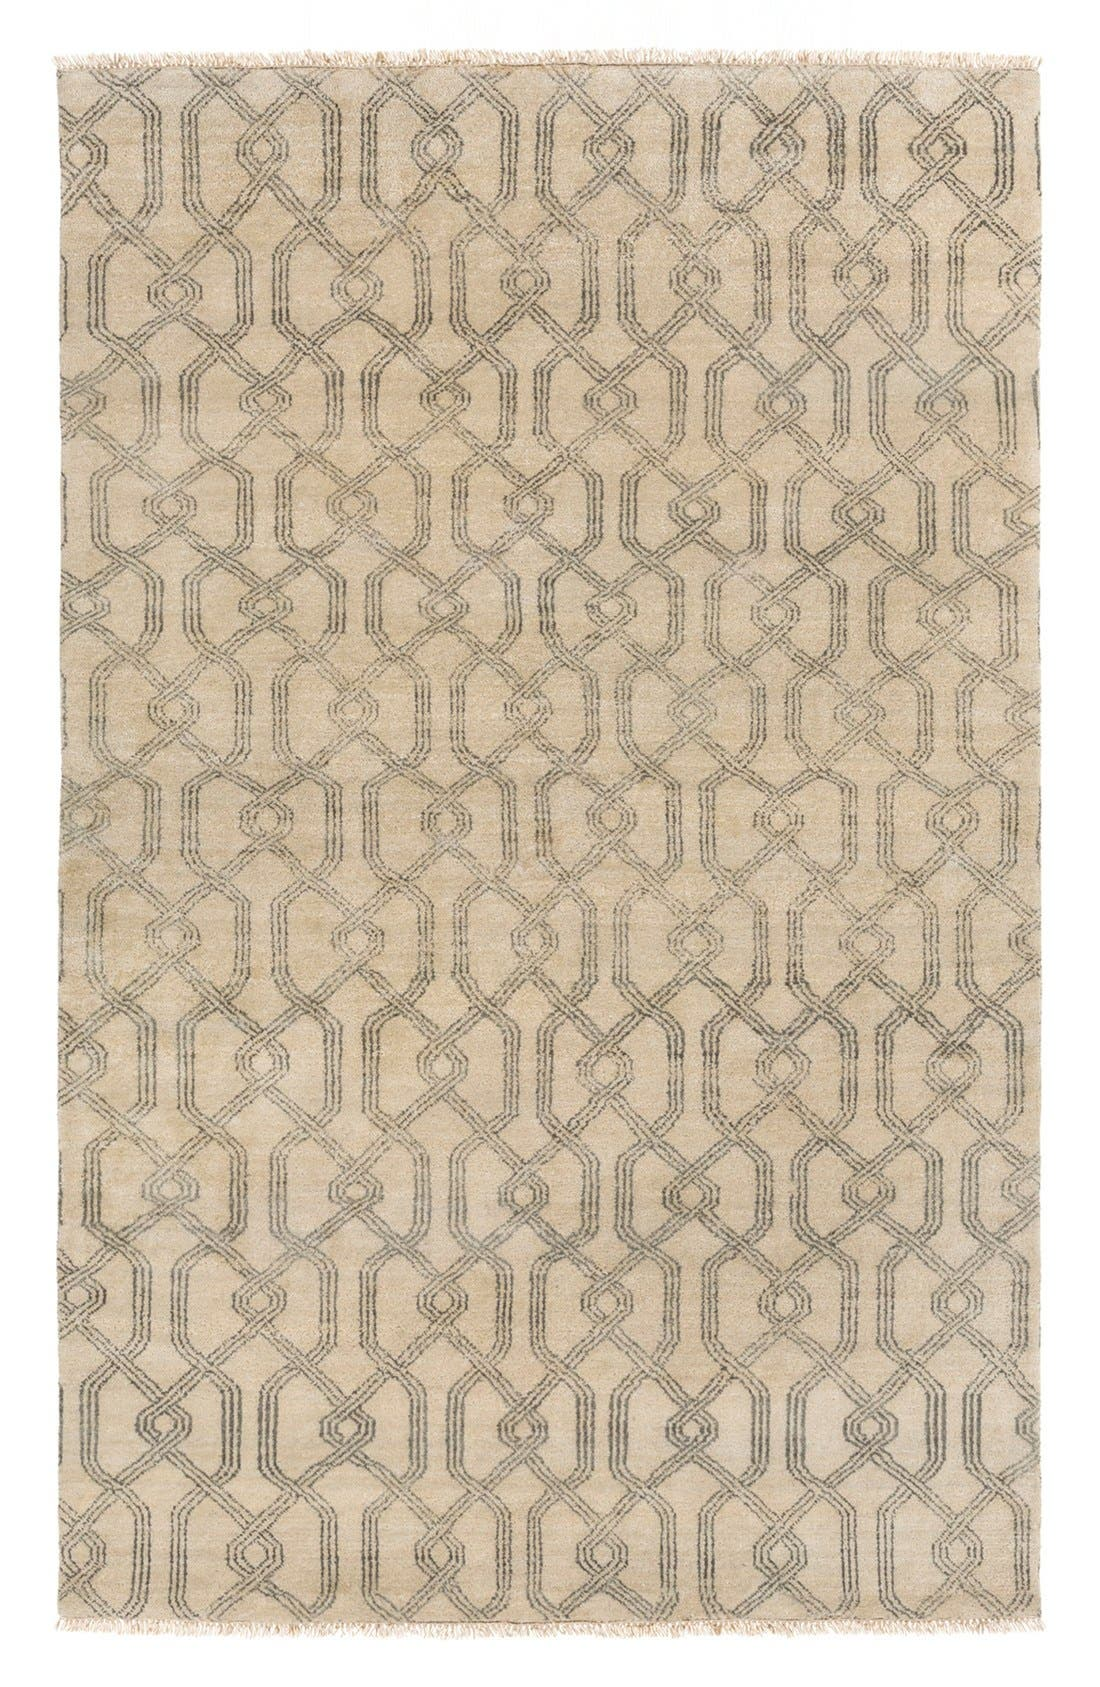 Main Image - Surya Home 'Stanton' Wool & Cotton Rug